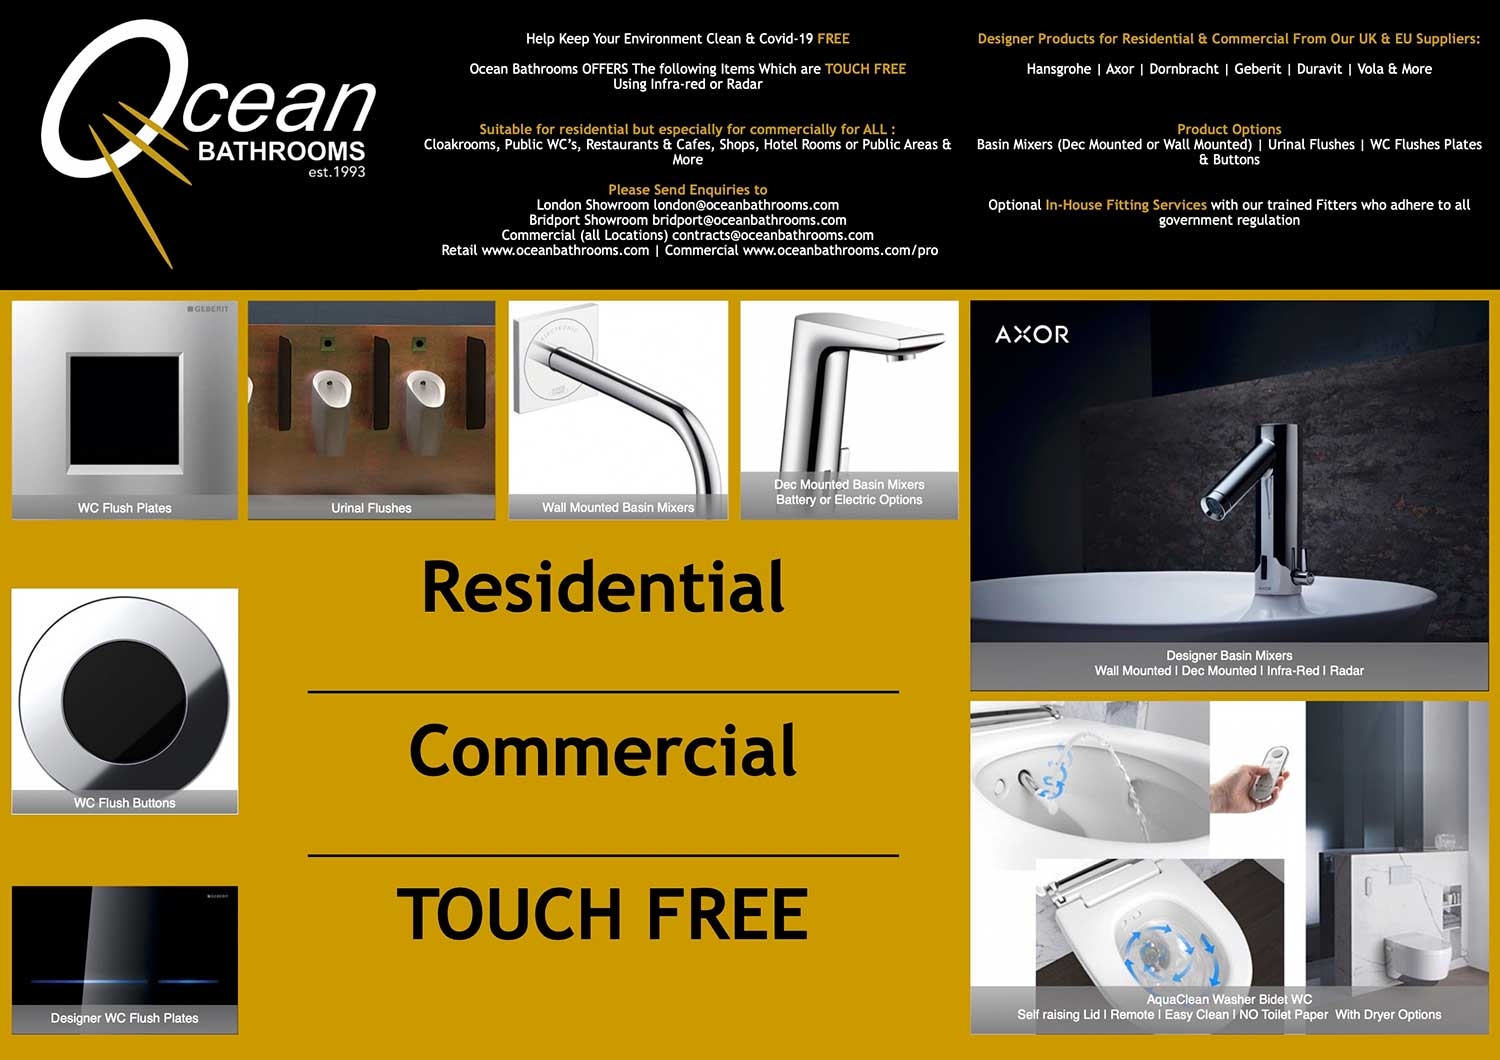 Touch-free Product Range From Ocean Bathrooms